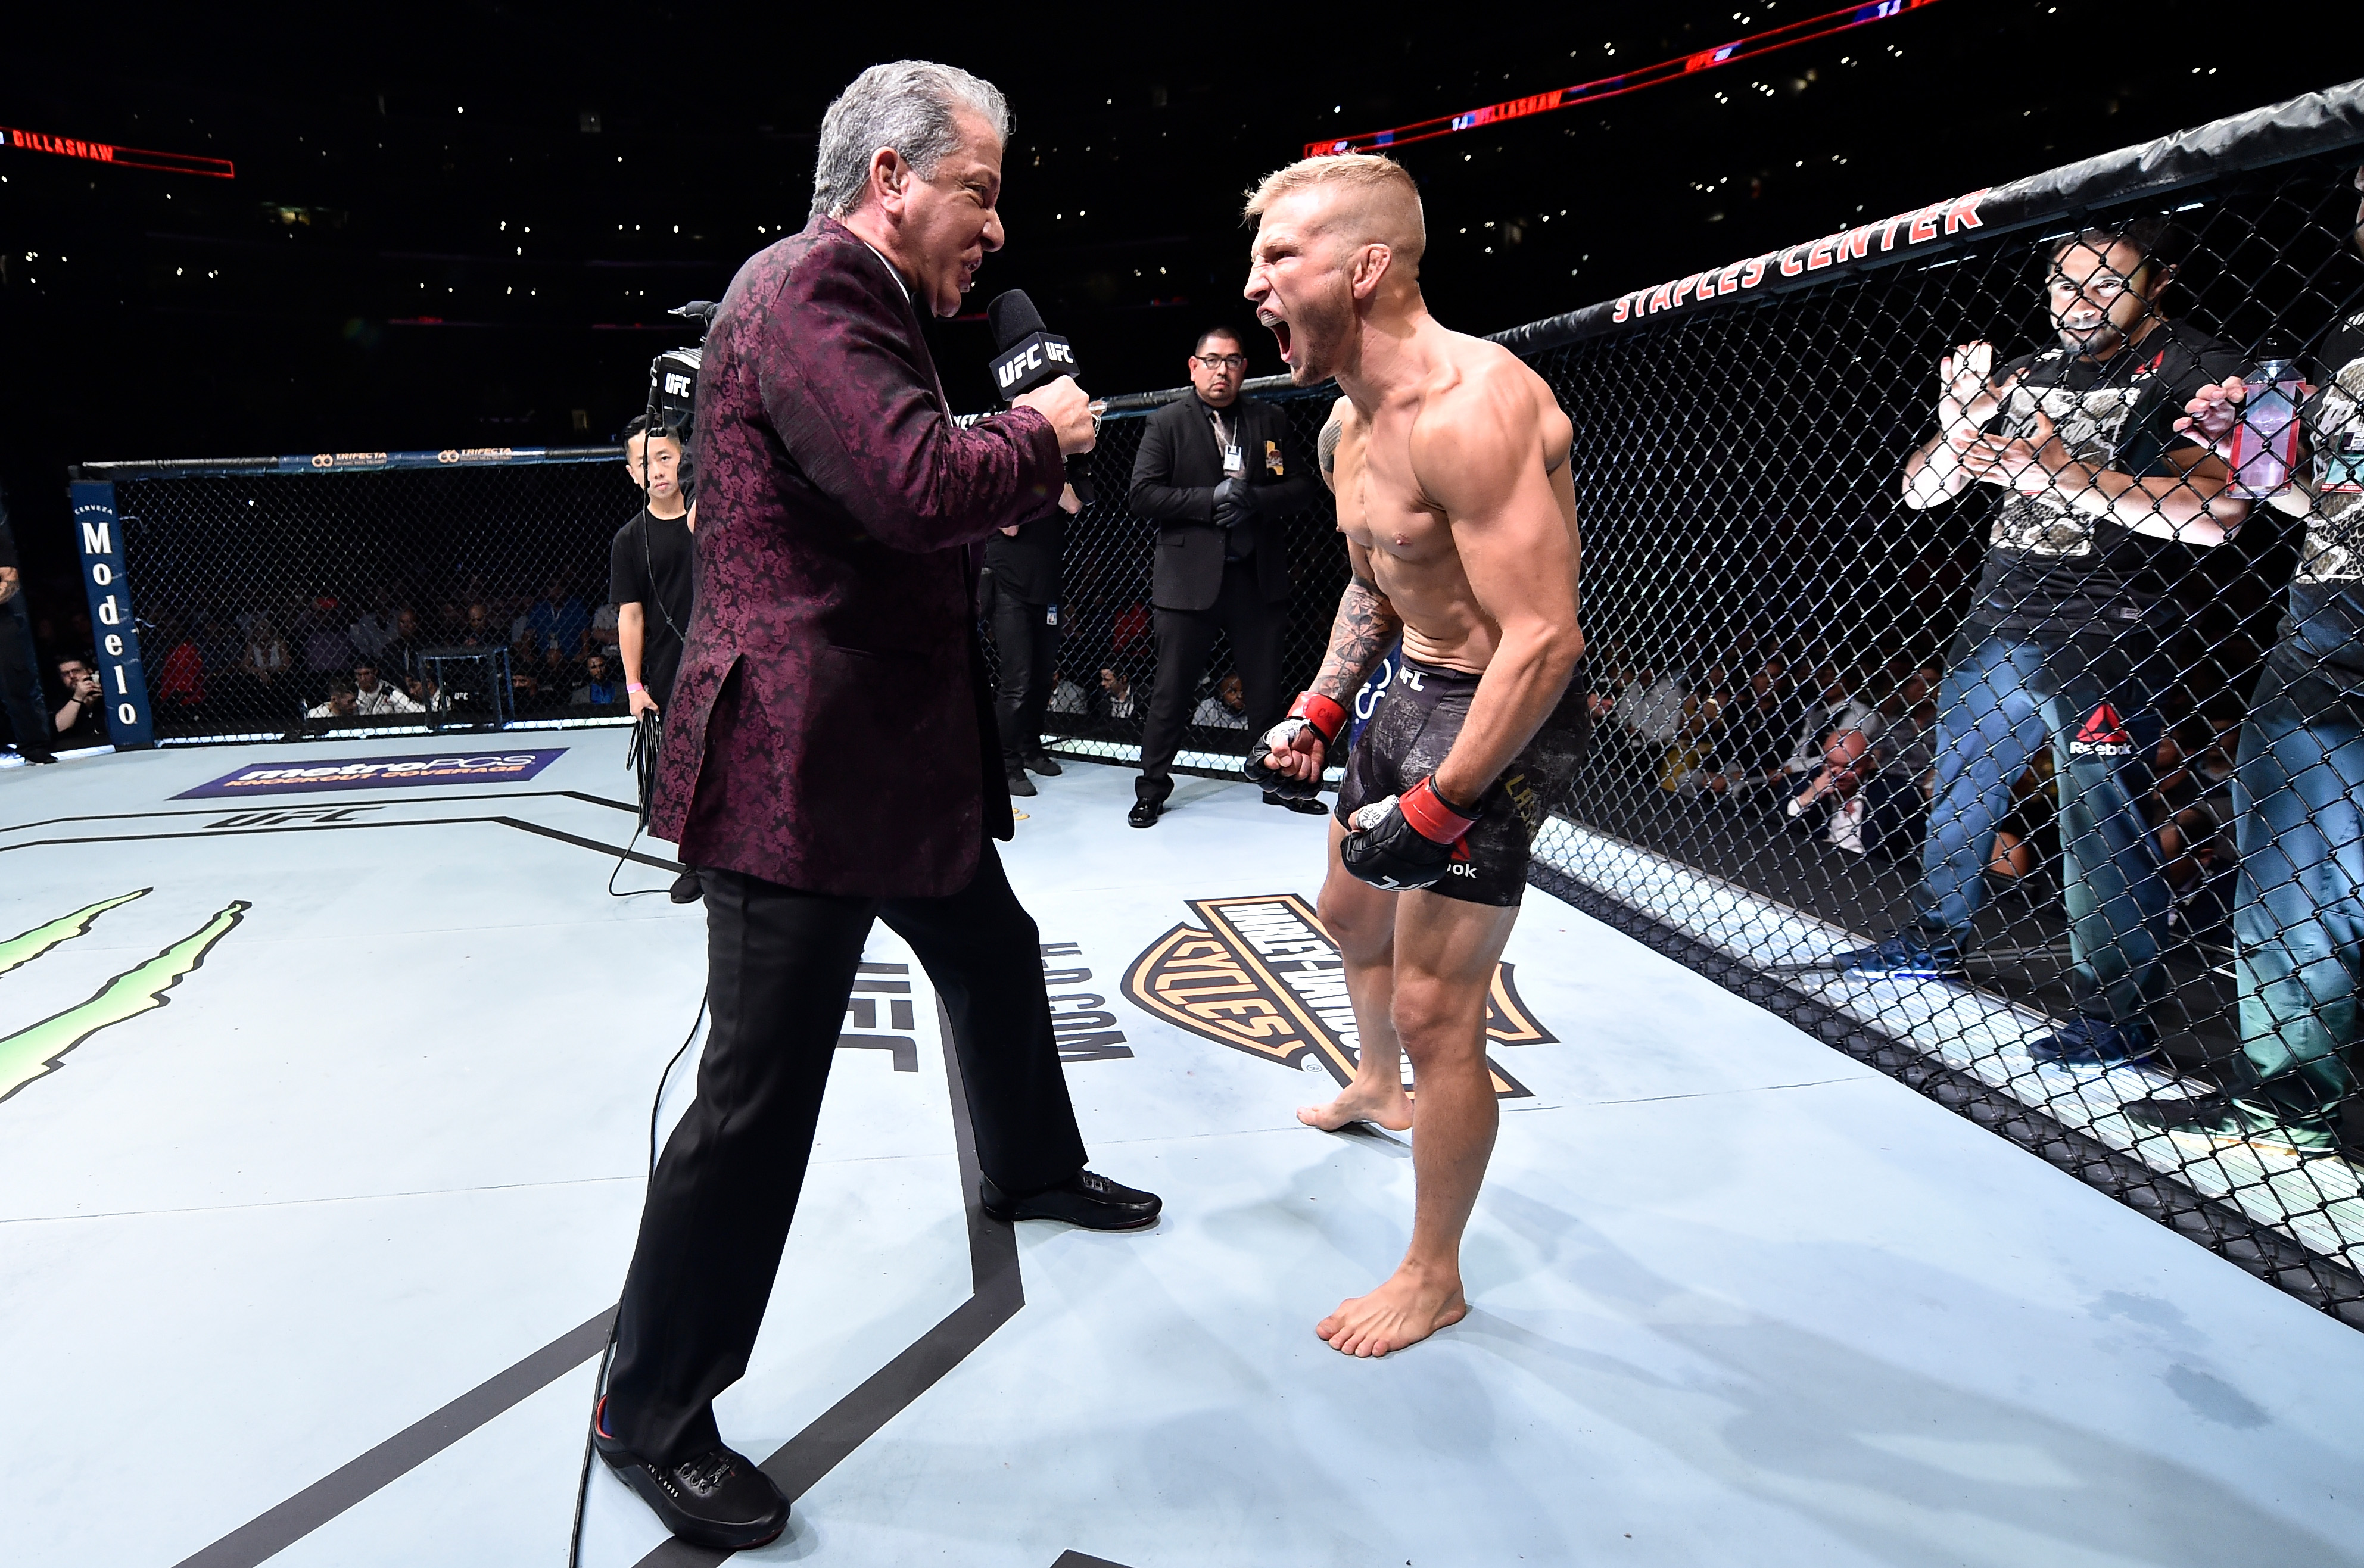 LOS ANGELES, CA - AUGUST 04: <a href='../fighter/TJ-Dillashaw'>TJ Dillashaw</a> is introduced by Bruce Buffer prior to his UFC bantamweight championship fight against <a href='../fighter/cody-garbrandt'>Cody Garbrandt</a> during the UFC 227 event inside Staples Center on August 4, 2018 in Los Angeles, California. (Photo by Jeff Bottari/Zuffa LLC/Zuffa LLC via Getty Images)